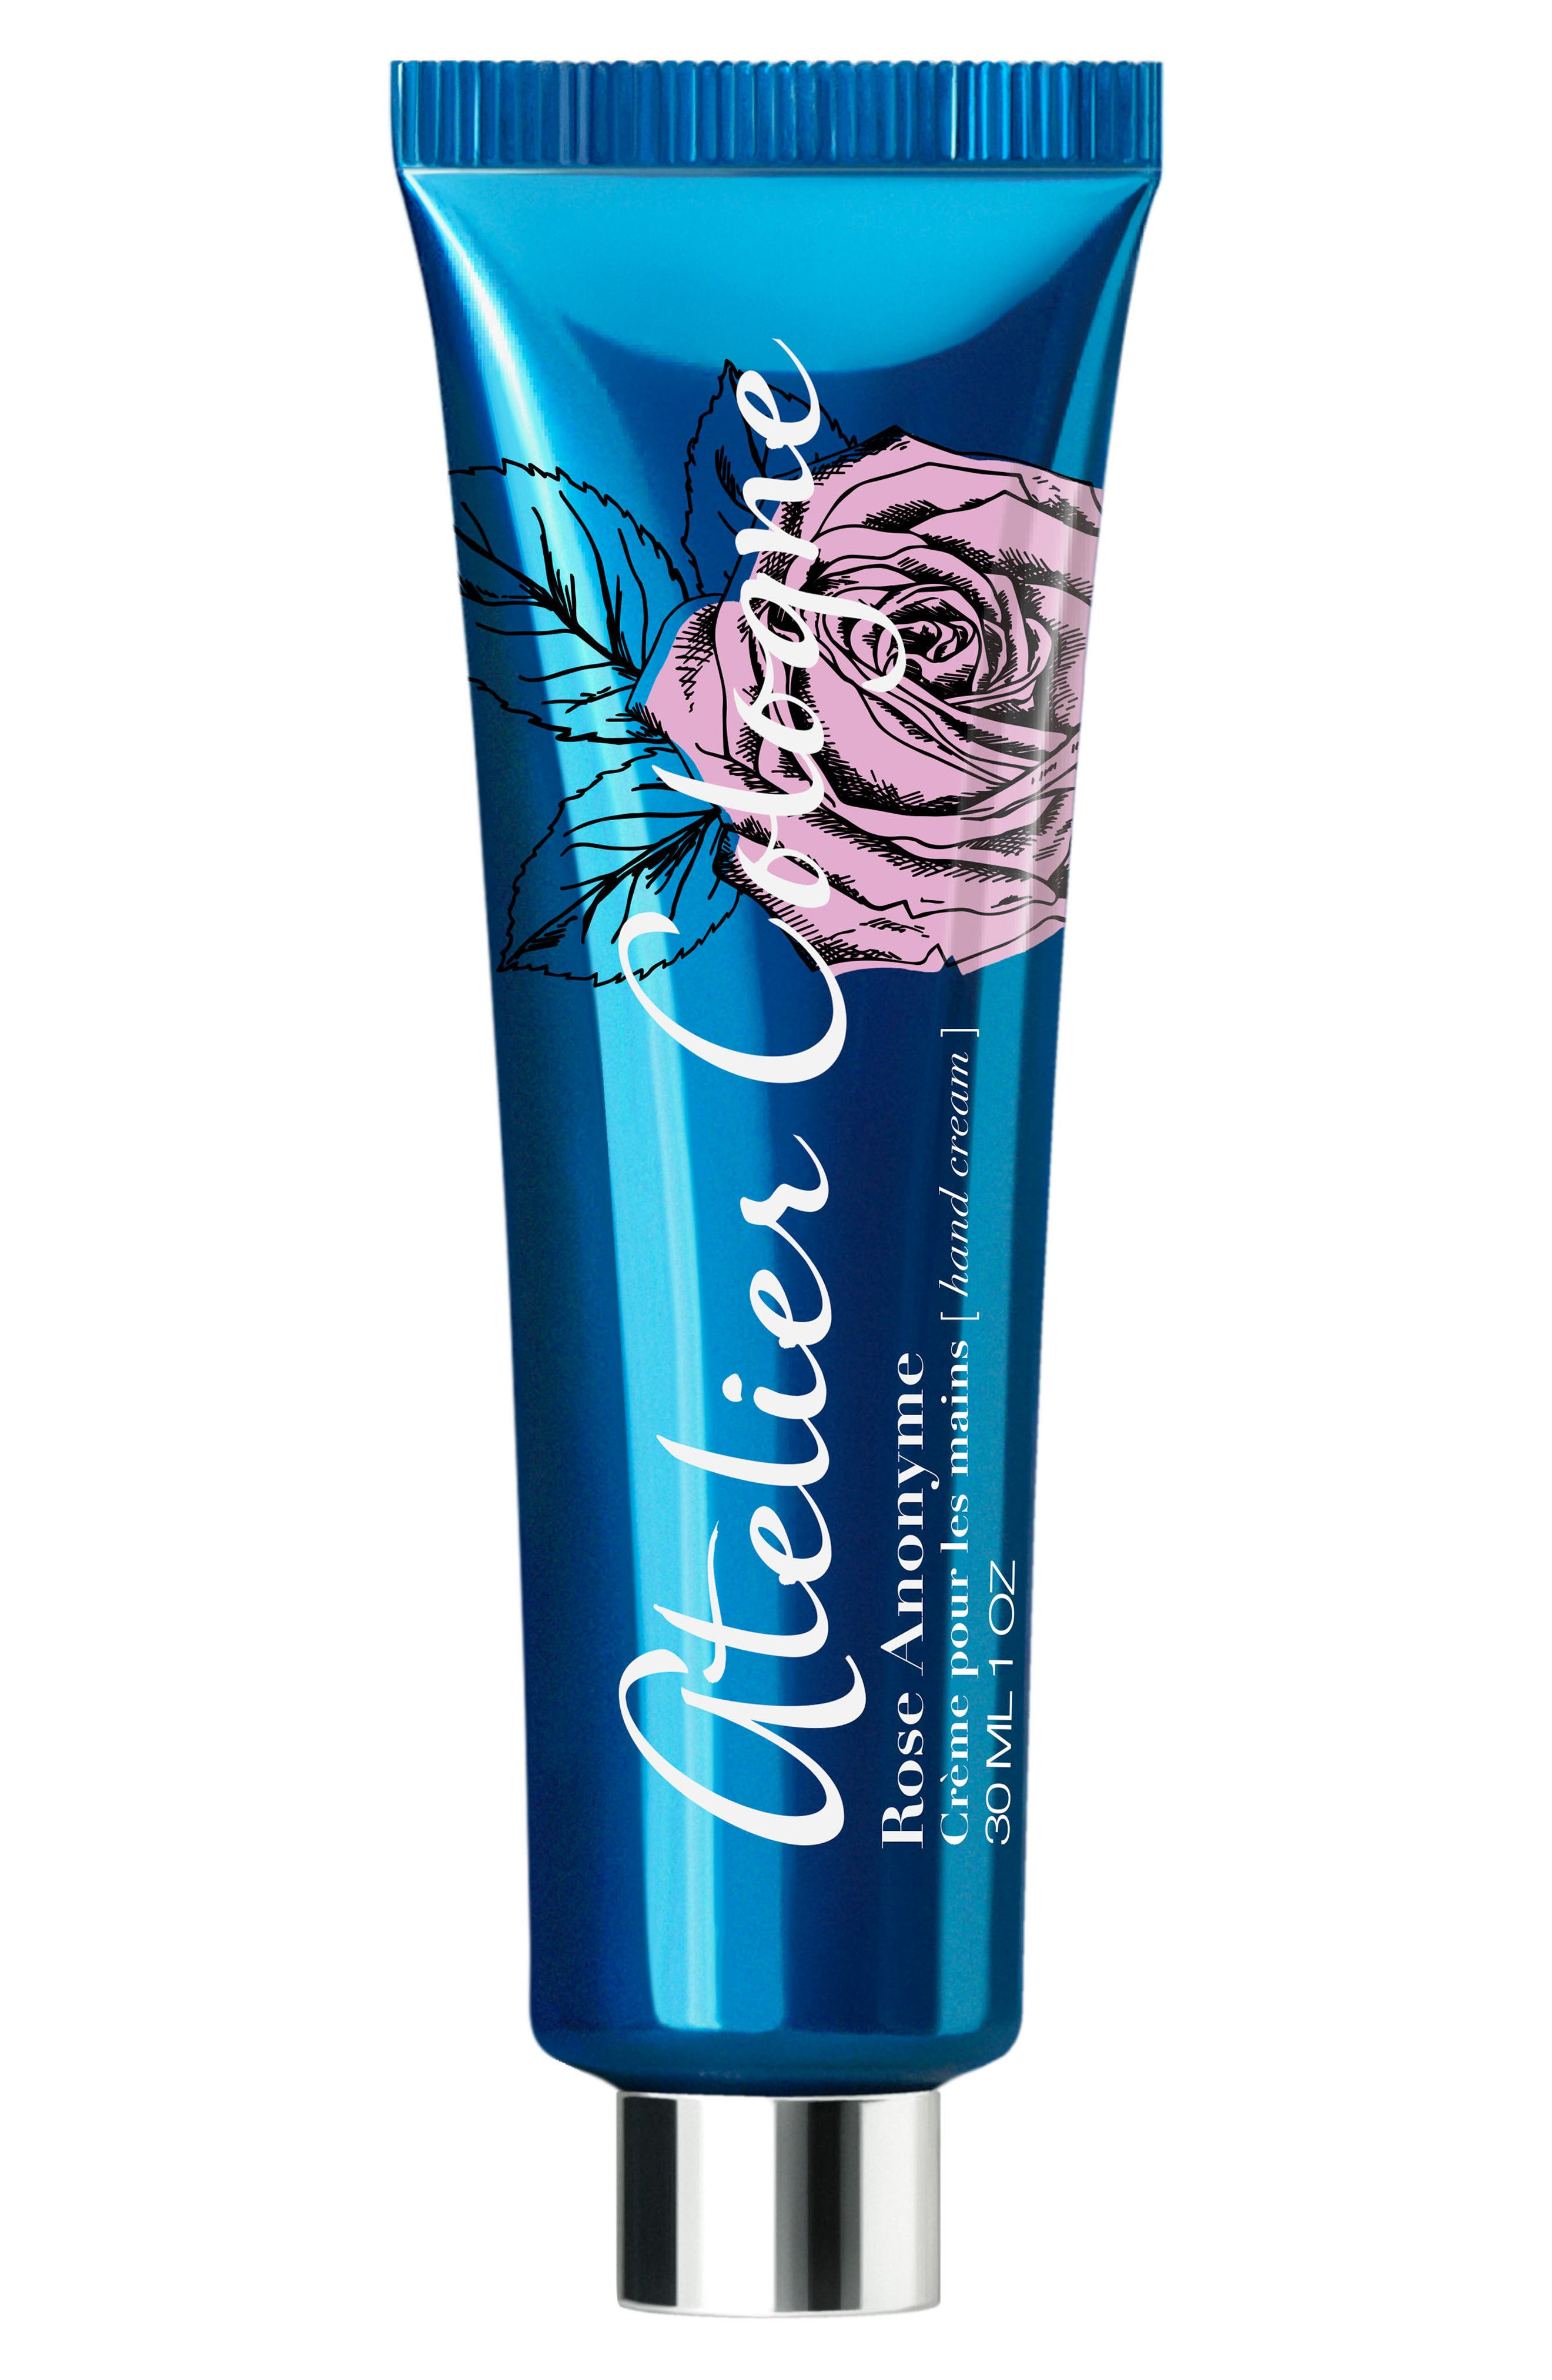 Atelier Cologne Rose Anonyme Hand Cream